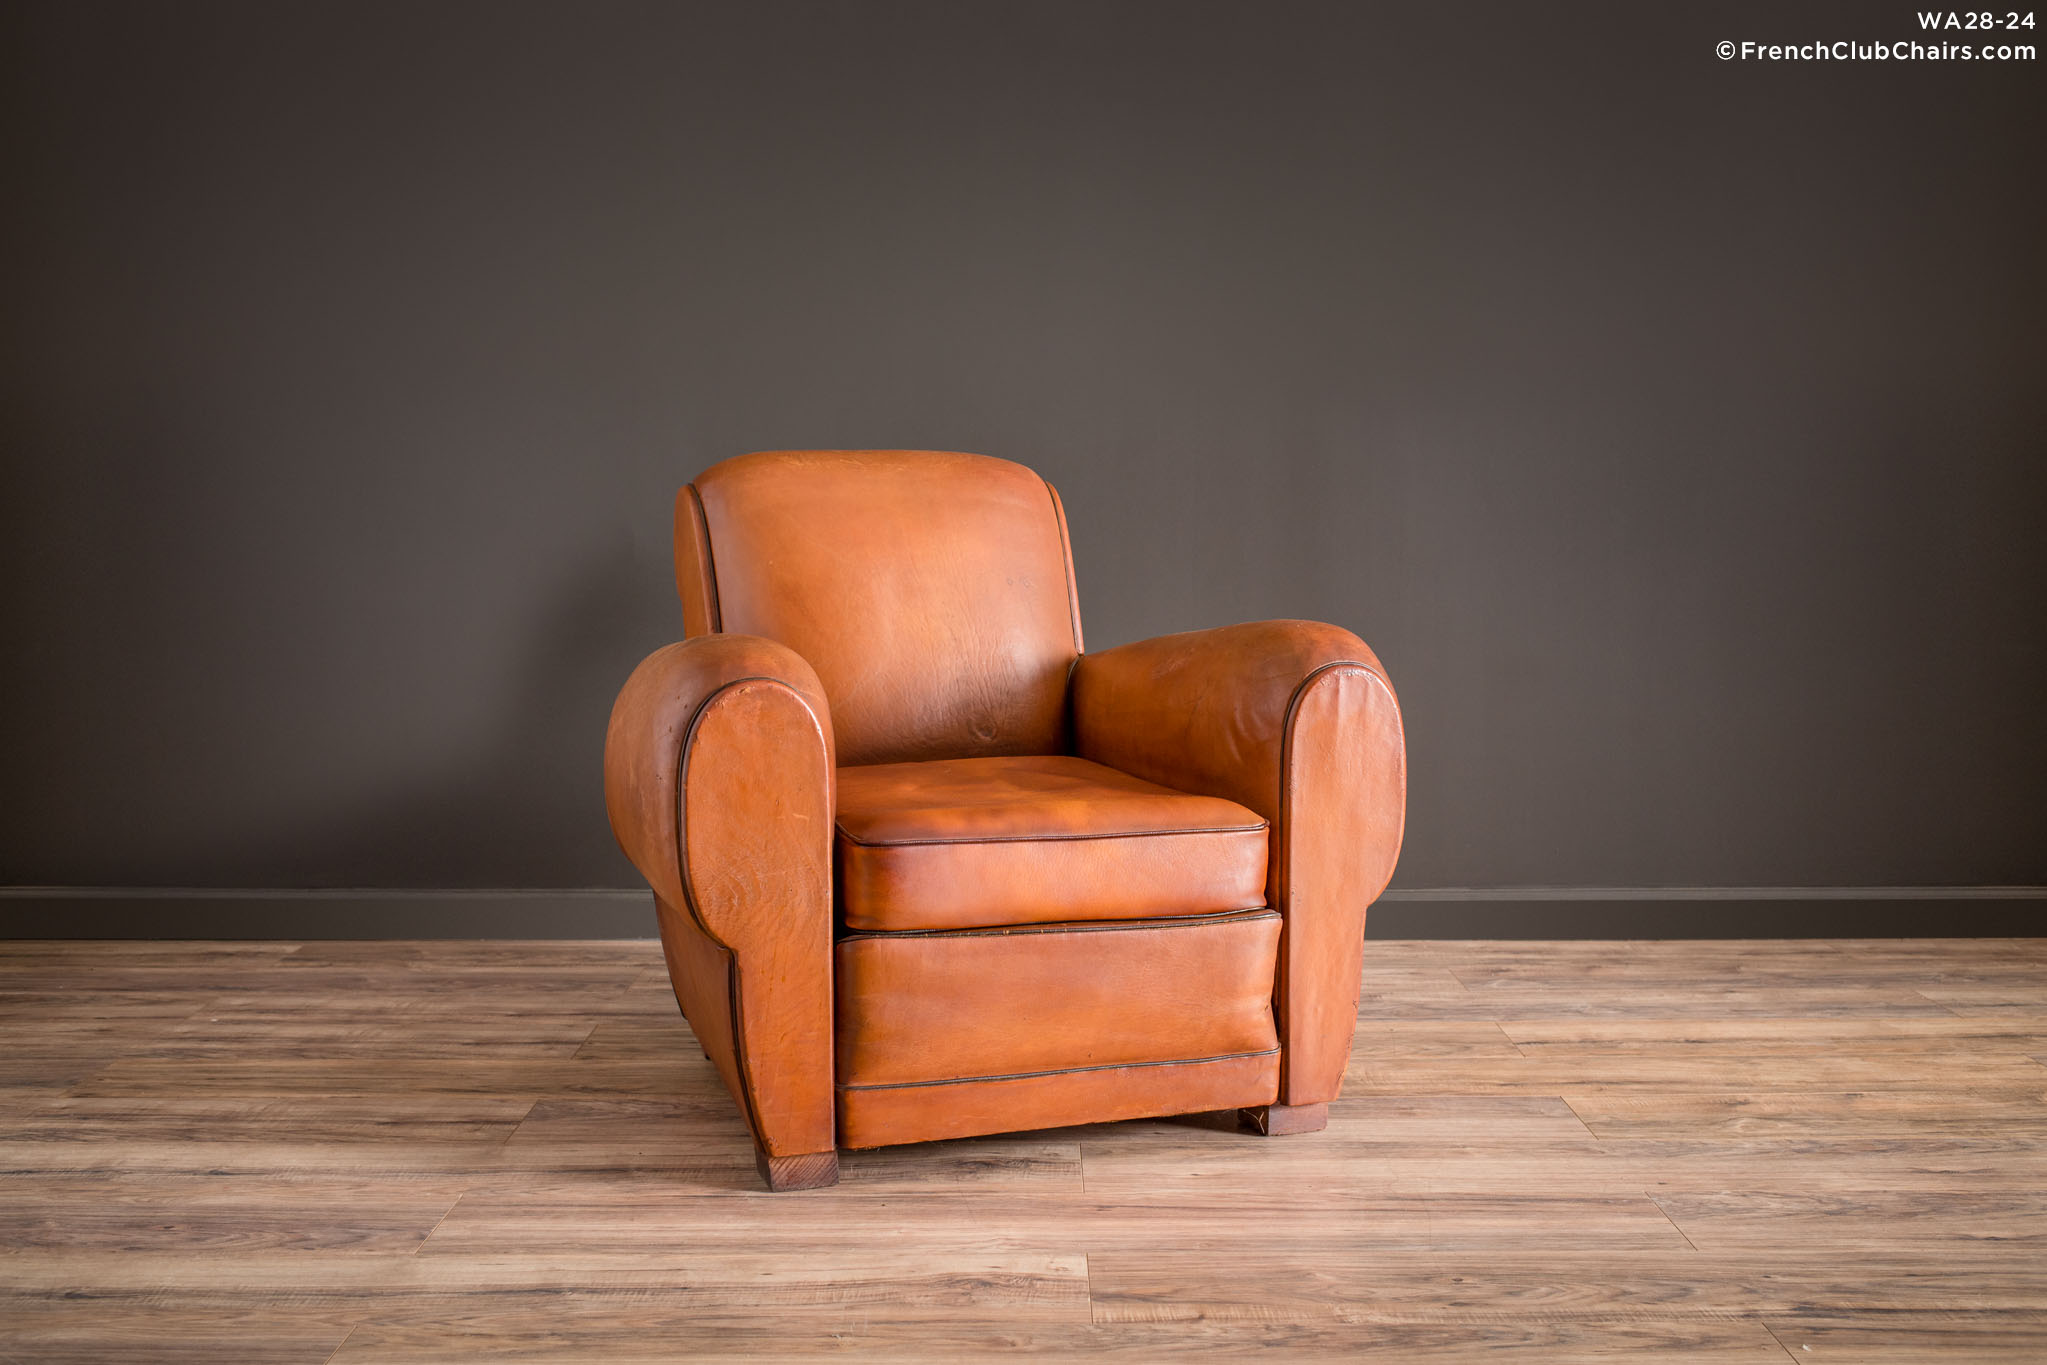 WA_28-24_Nantes_Cognac_Rollback_Solo_R_1TQ1-williams-antiks-leather-french-club-chair-wa_fcccom